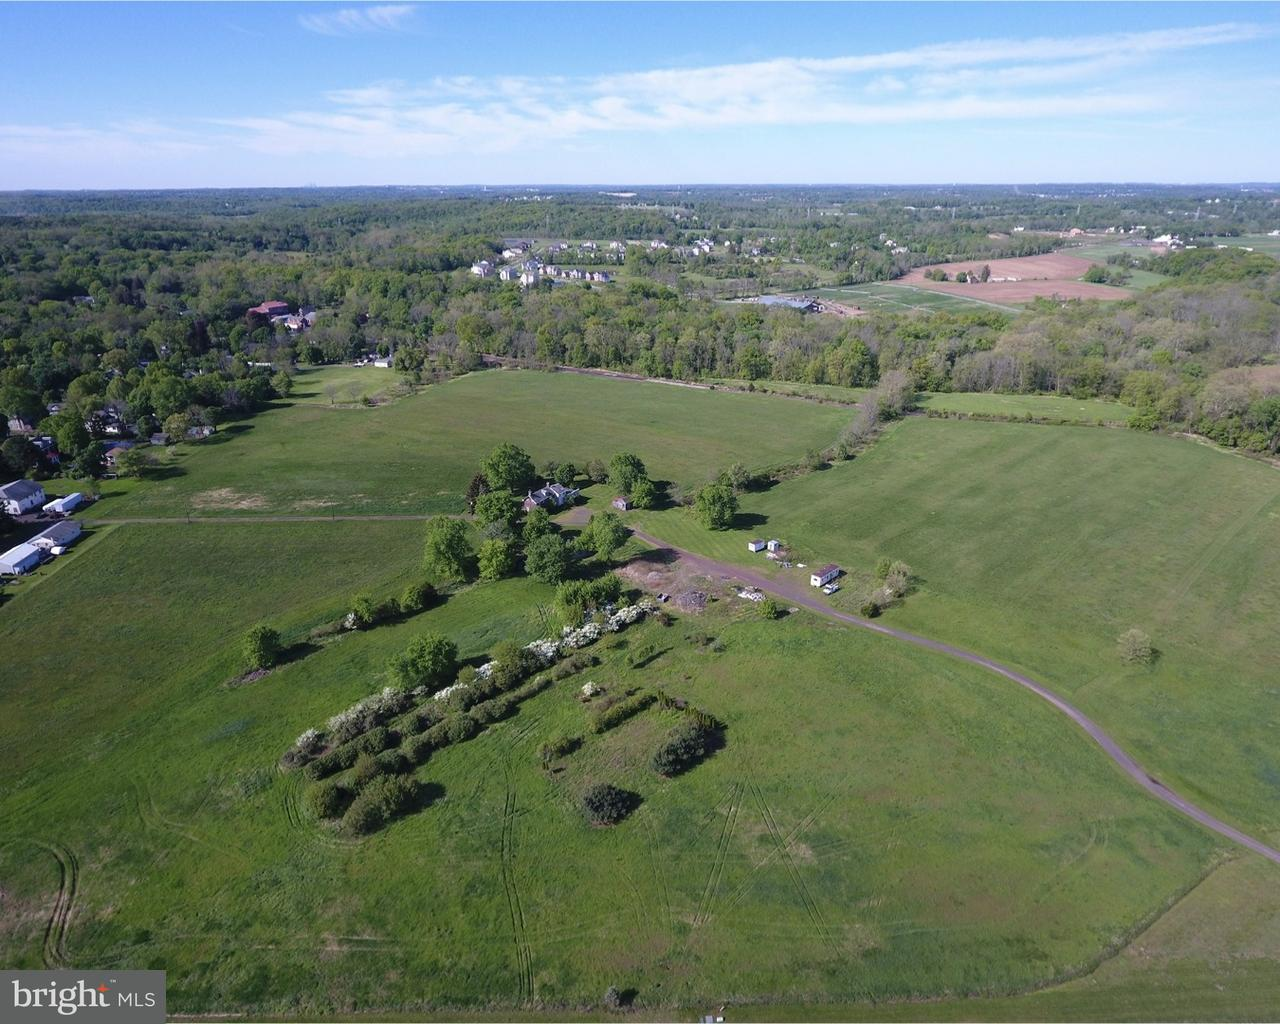 4332 TOWNSHIP LINE RD, BUCKINGHAM TWP - Listed at $1,799,990, BUCKINGHAM TWP